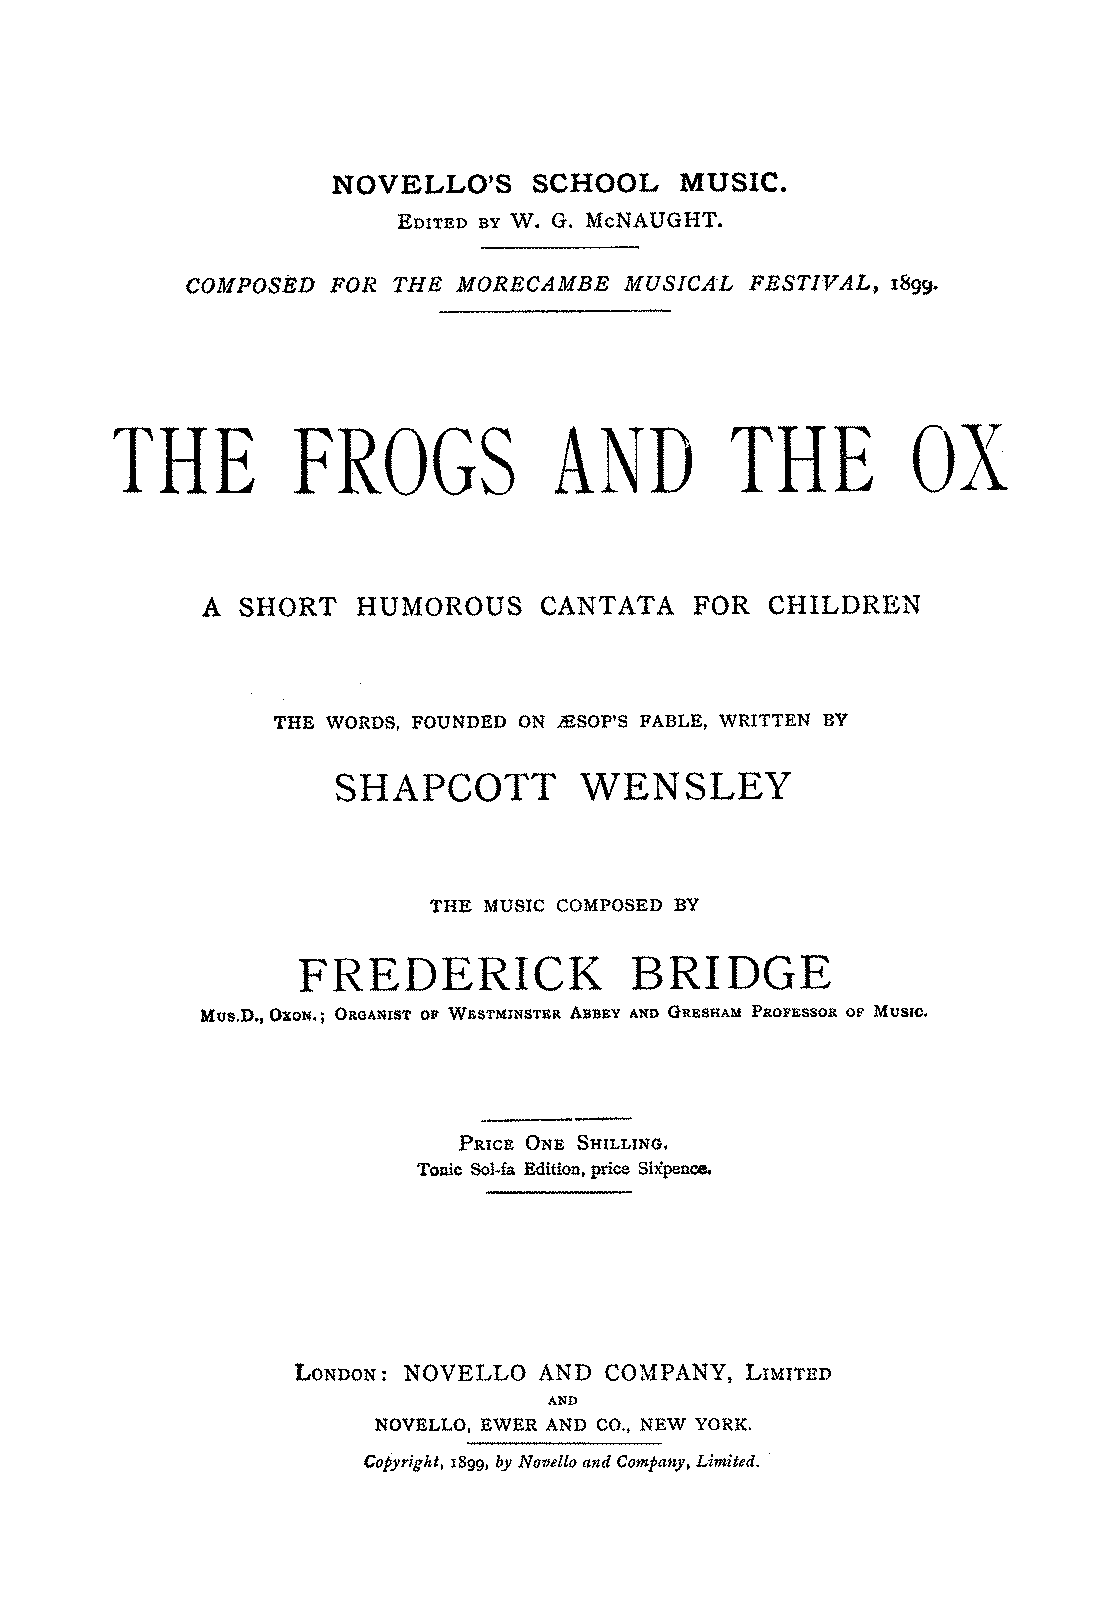 PMLP364284-Bridge, Frederick - The Frogs and the Ox.pdf